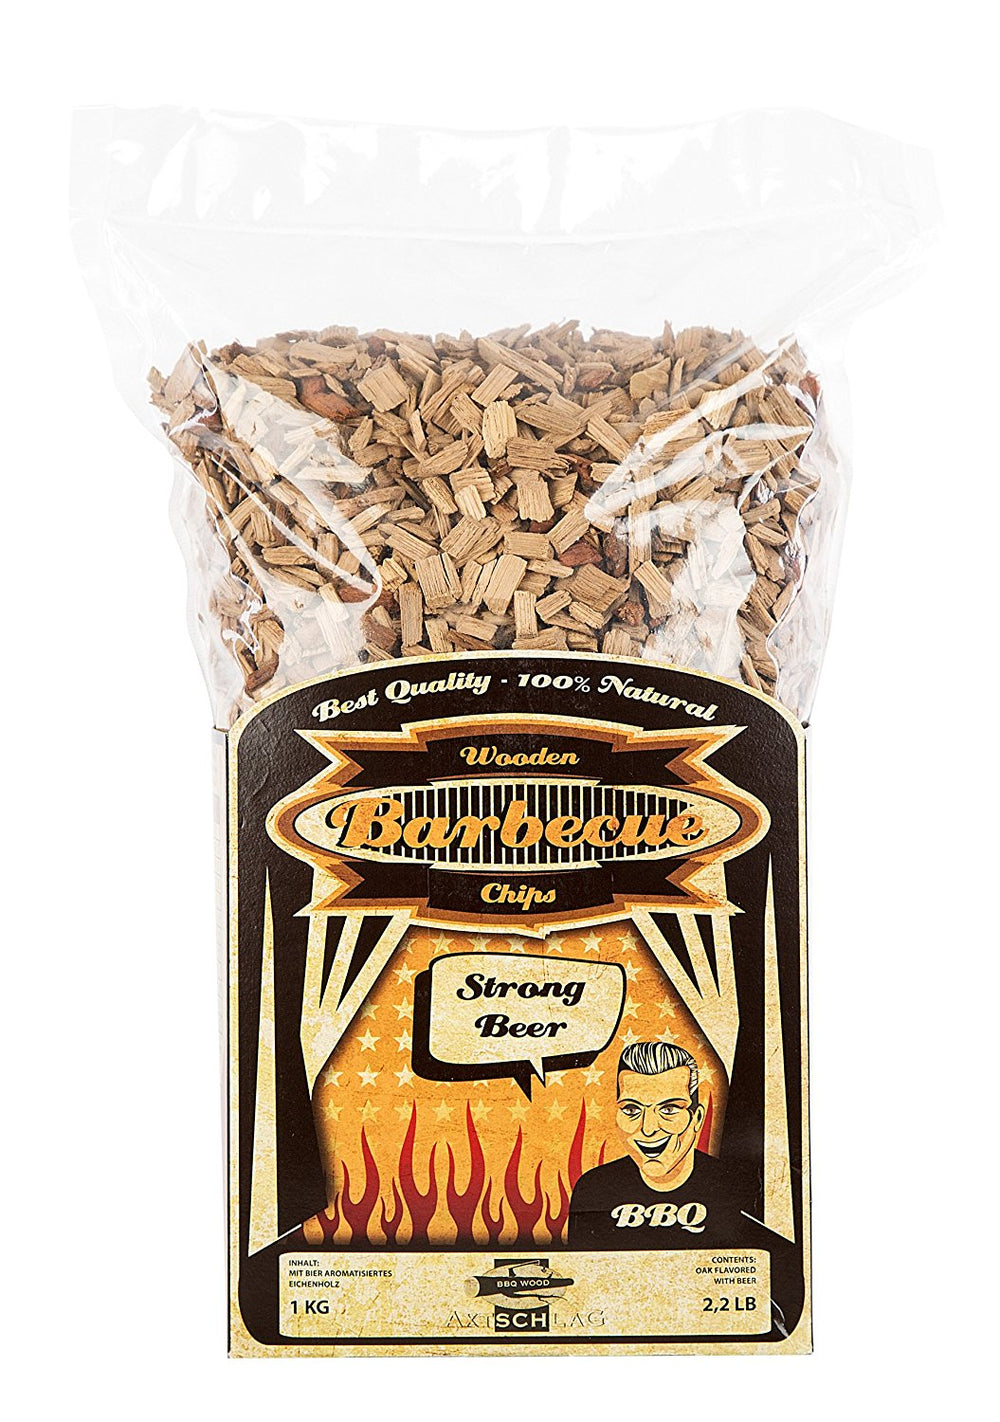 WOOD SMOKING CHIPS - Strong Beer